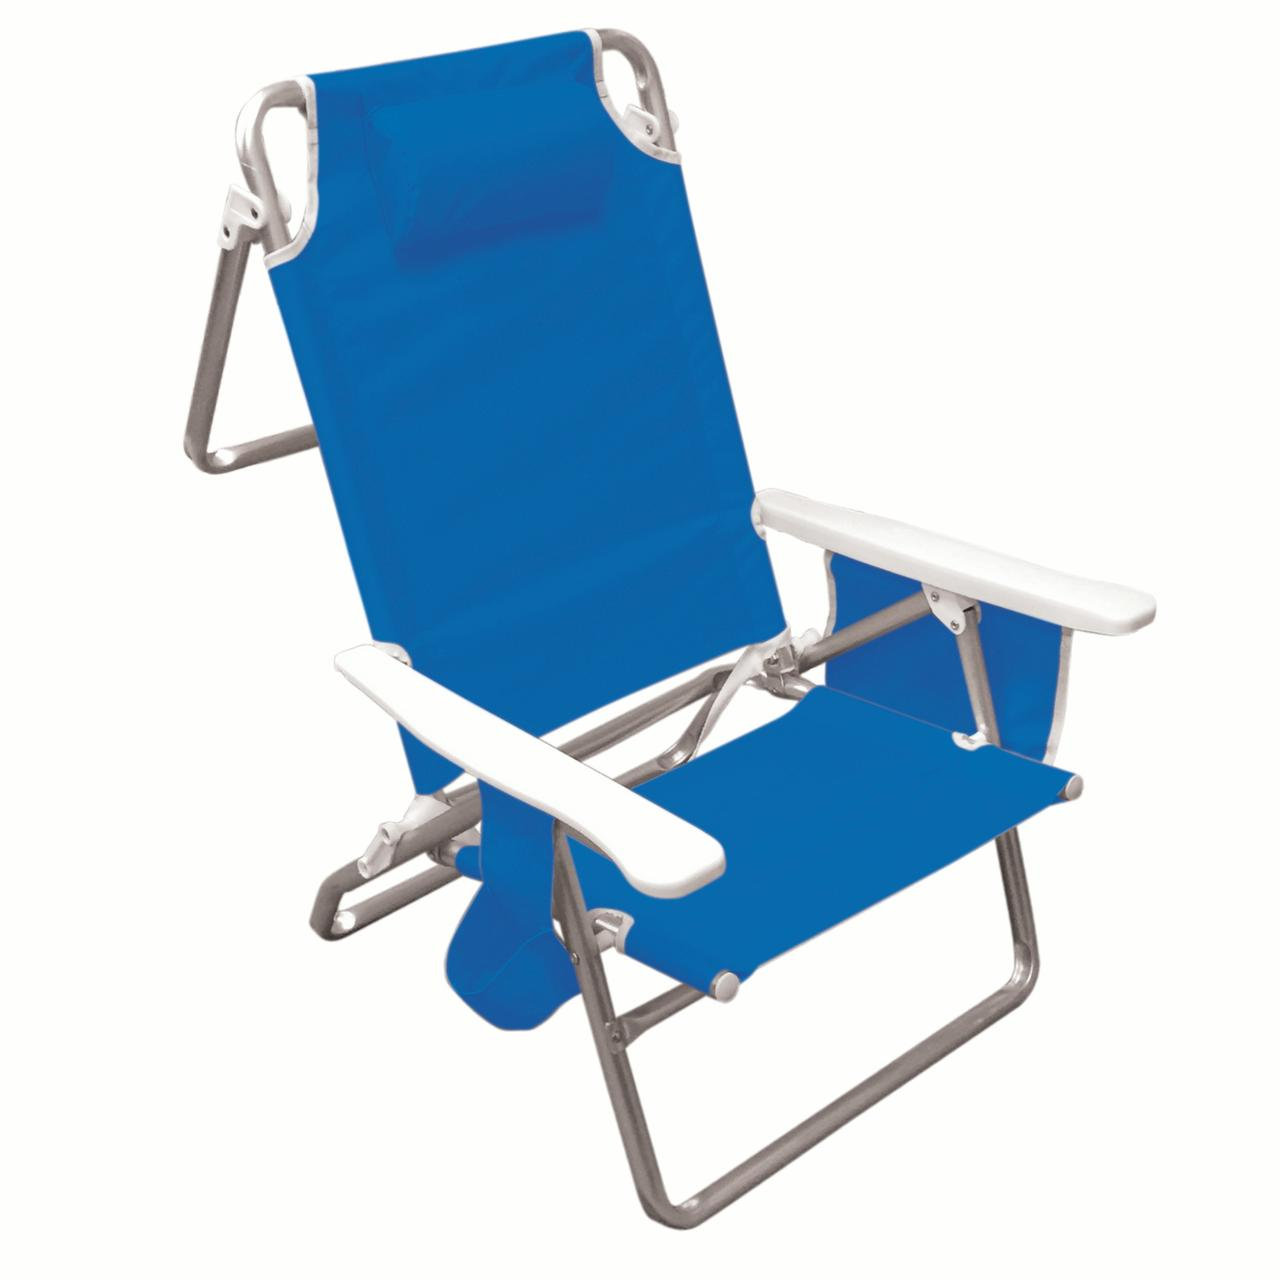 Hawaiian Tropic Five Position folding beach chair with carrying strap, pocket organizer, head rest pillow, cup holder